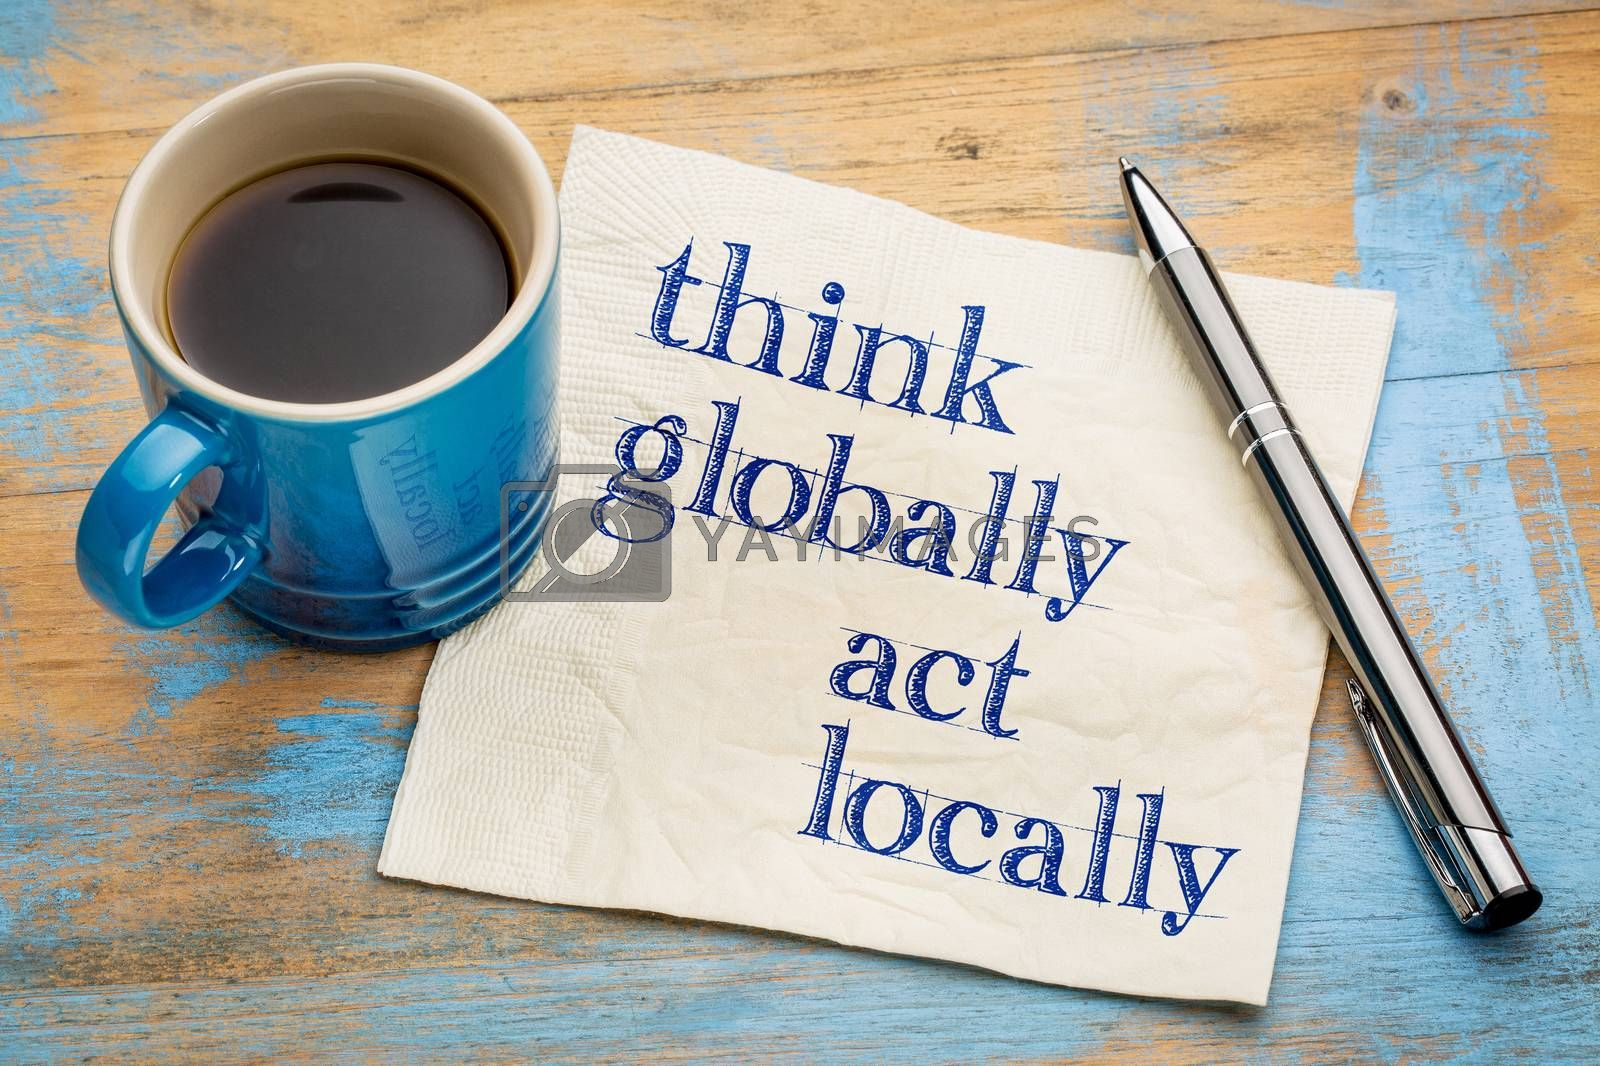 Think globally, act locally by PixelsAway